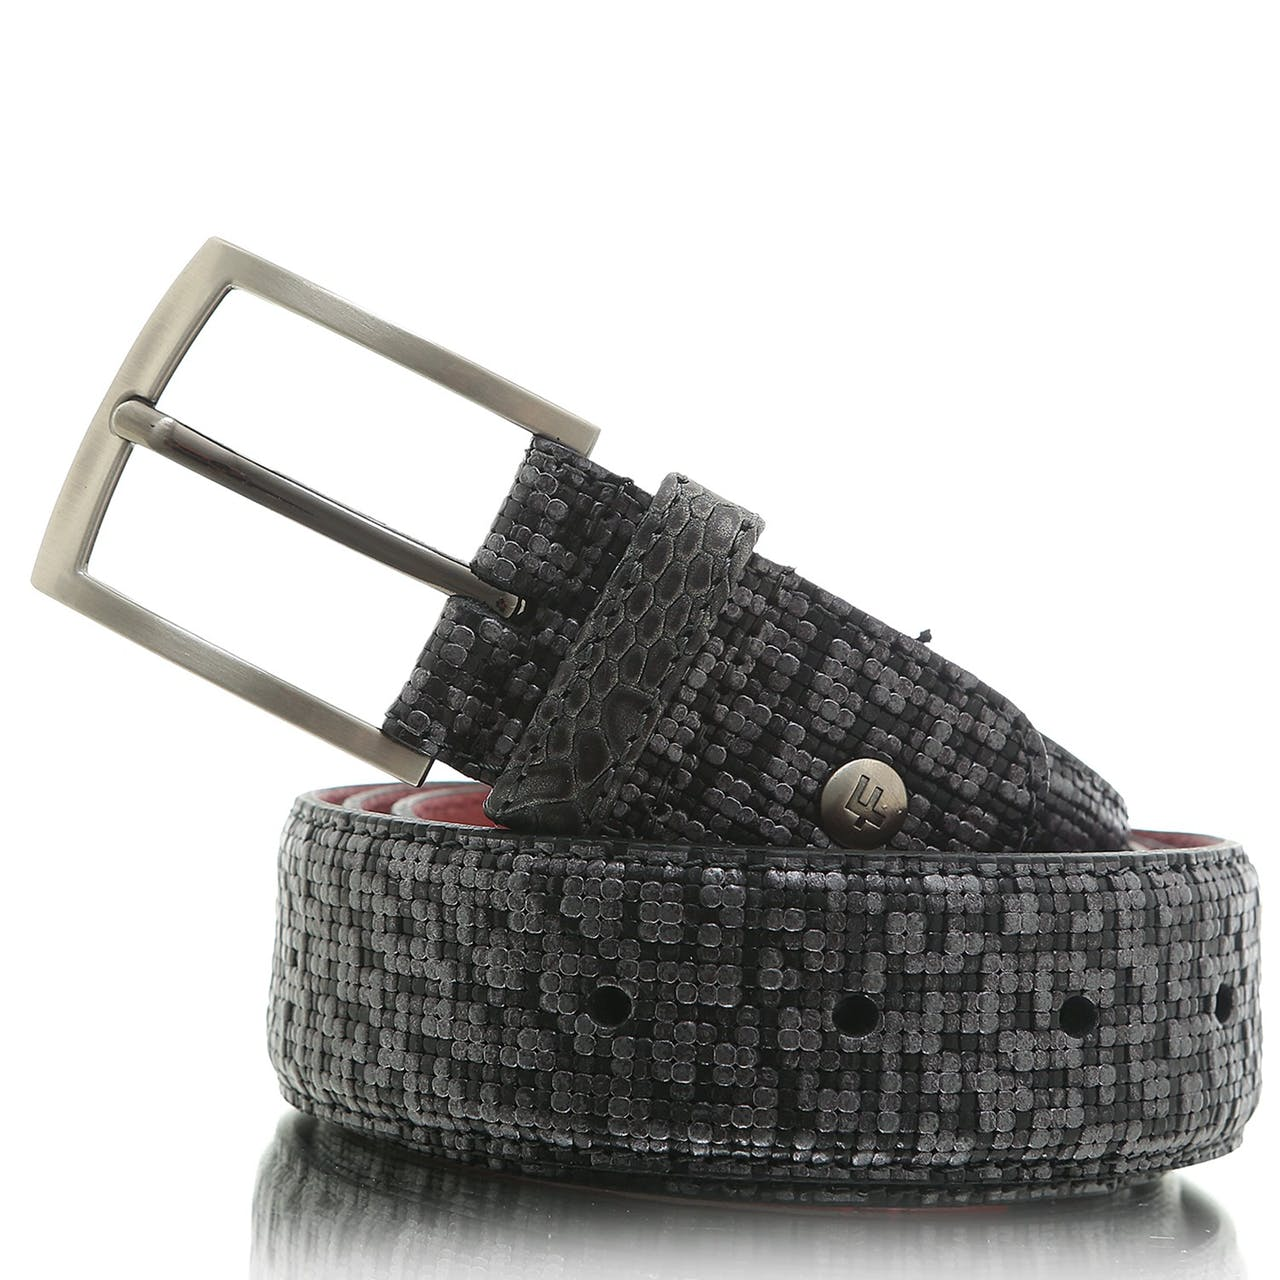 FLORIS VAN BOMMEL Belt 75188/72 Grey print Metal